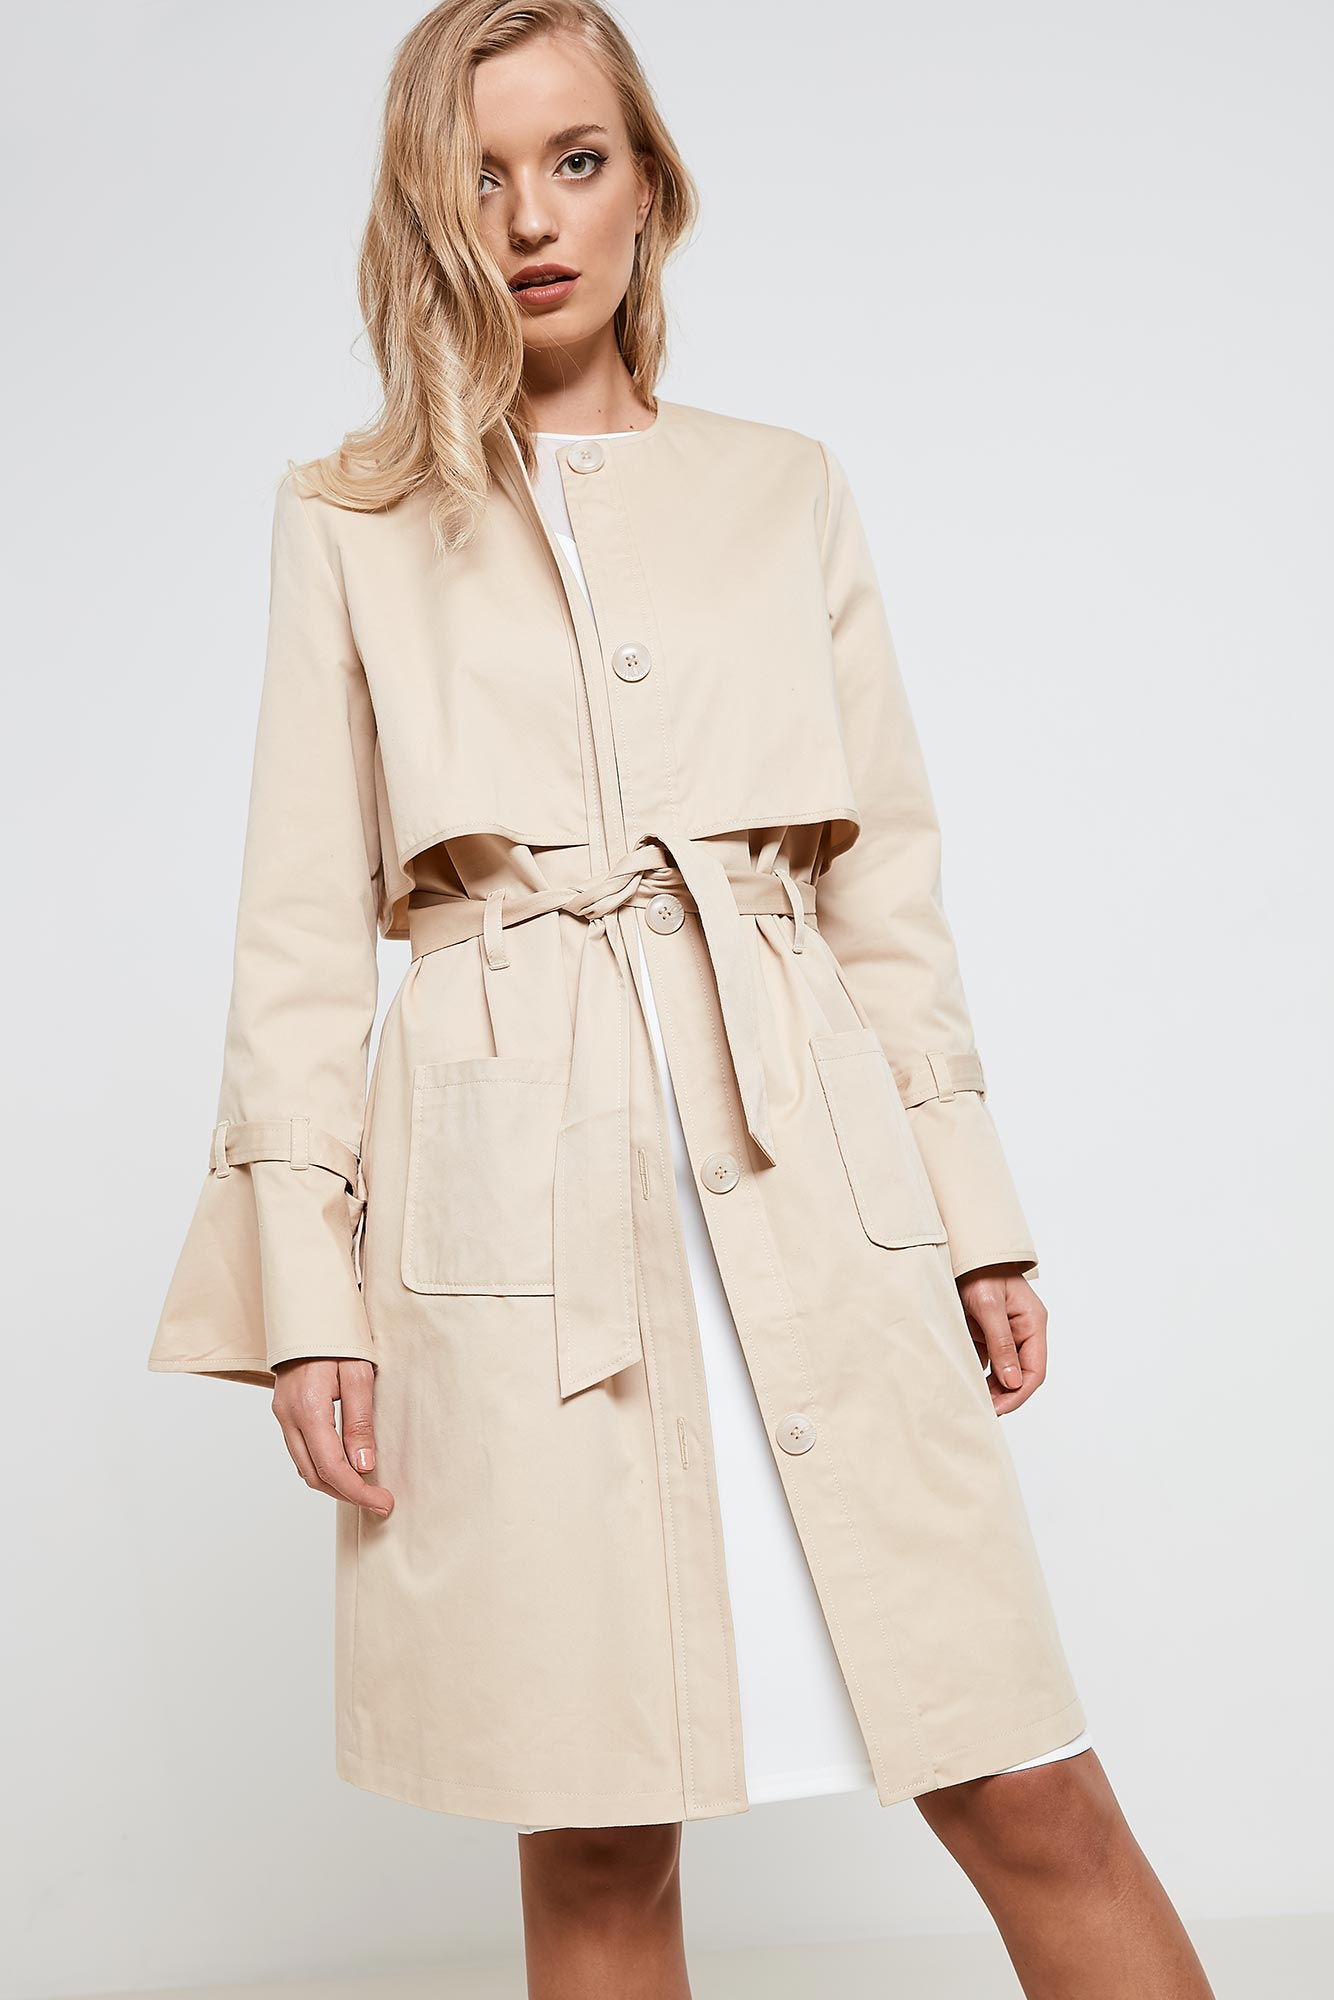 From classic to contemporary, the trench coat is an enduring wardrobe staple. Double-breasted designs in sandy tones are timeless, while options in vivid hues bring things up to date with modern flair. Master minimalist chic with a belted silhouette, or choose an edgier look with a zip fastening.